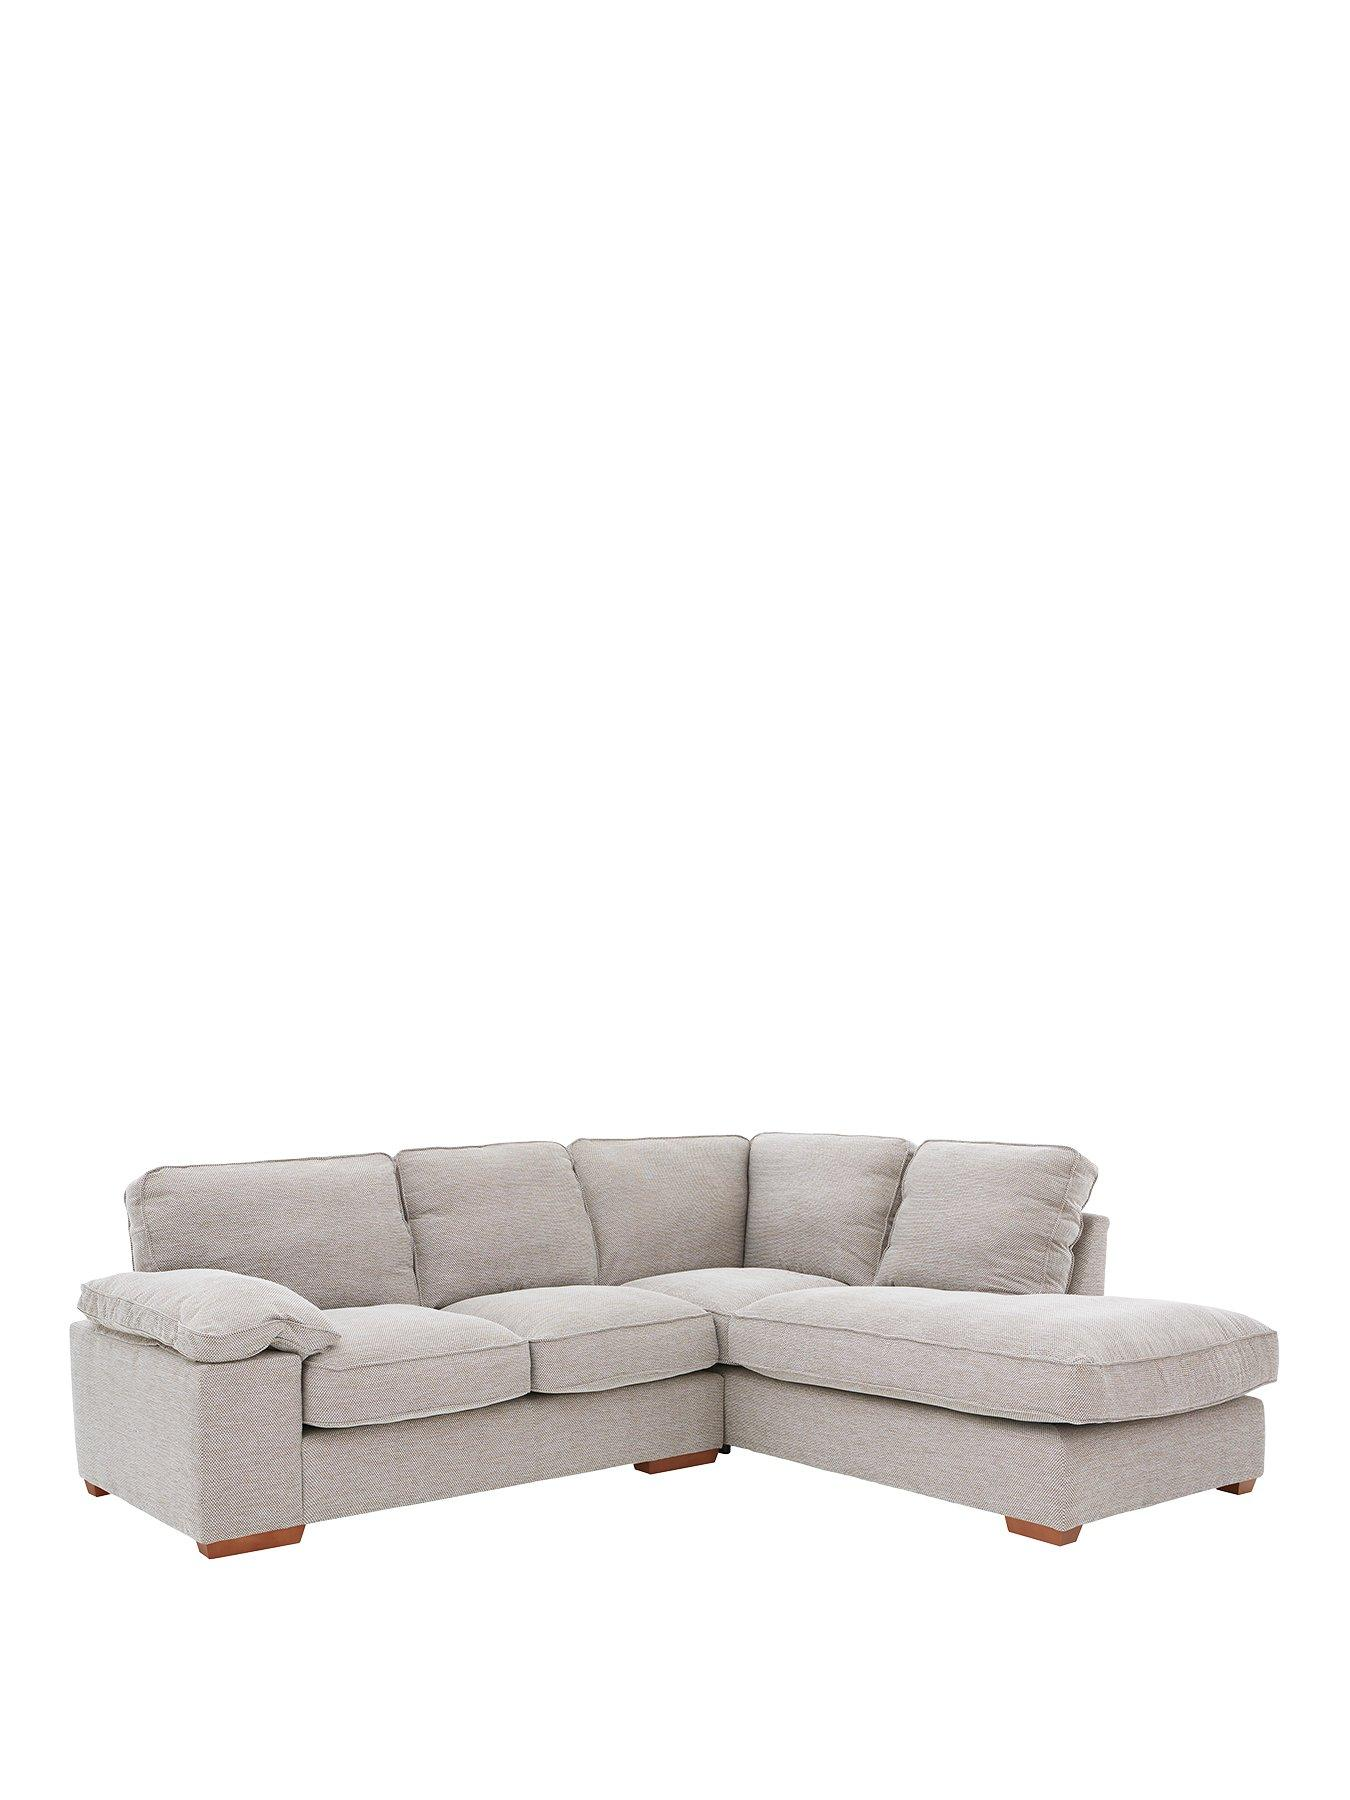 modular sofas ireland carmel sofa poliform corner couches free delivery littlewoods aylesbury right hand fabric chaise